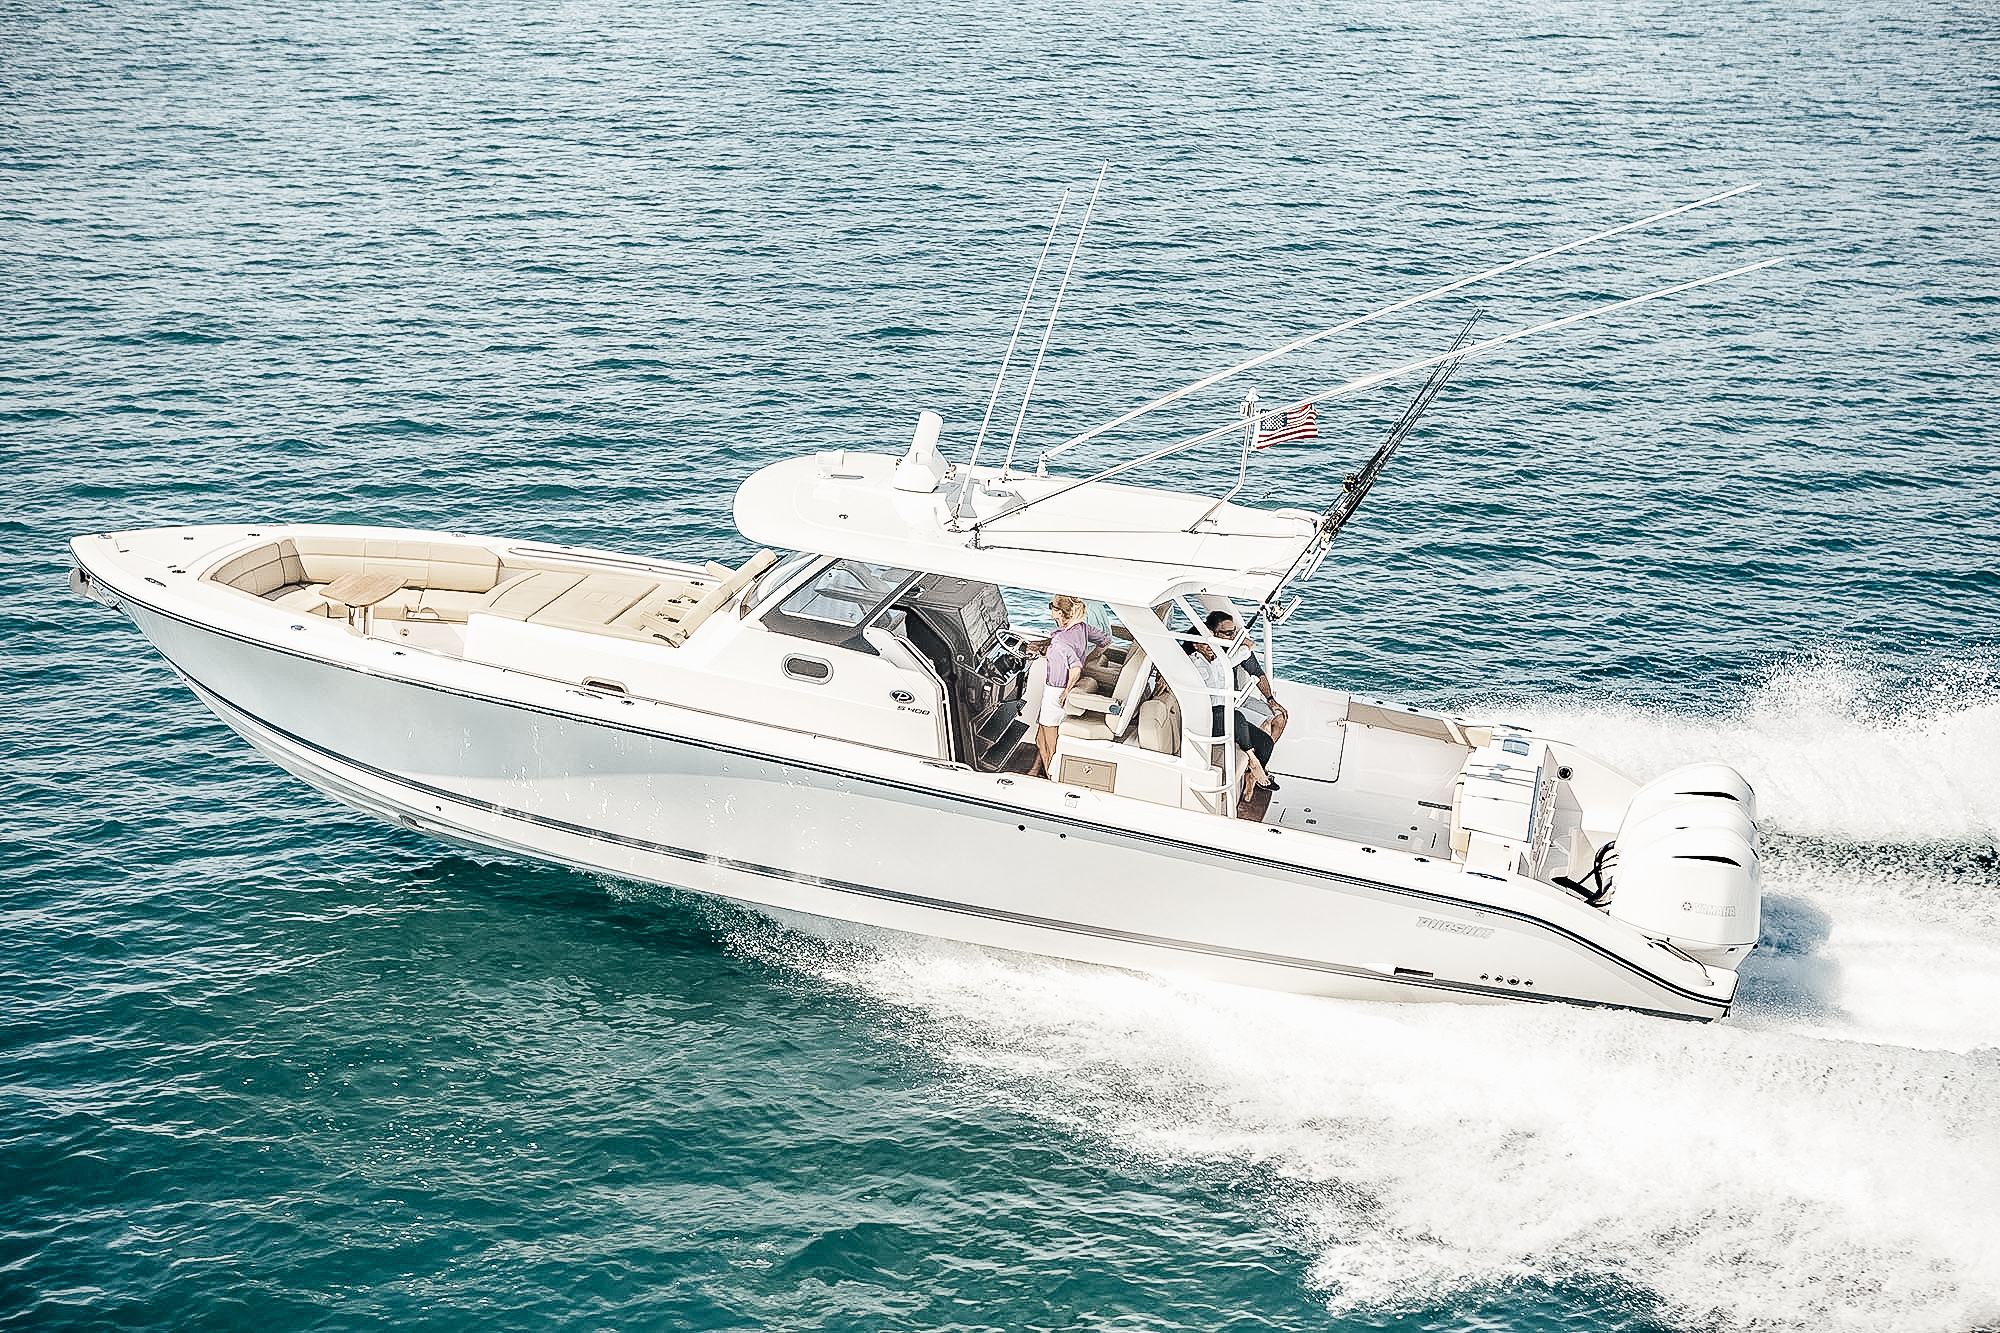 SPORT - Pursuit's sport series beckons big-game fisherman and families alike. A true center console footprint that delivers across the board.S 408S 368S 328S 288